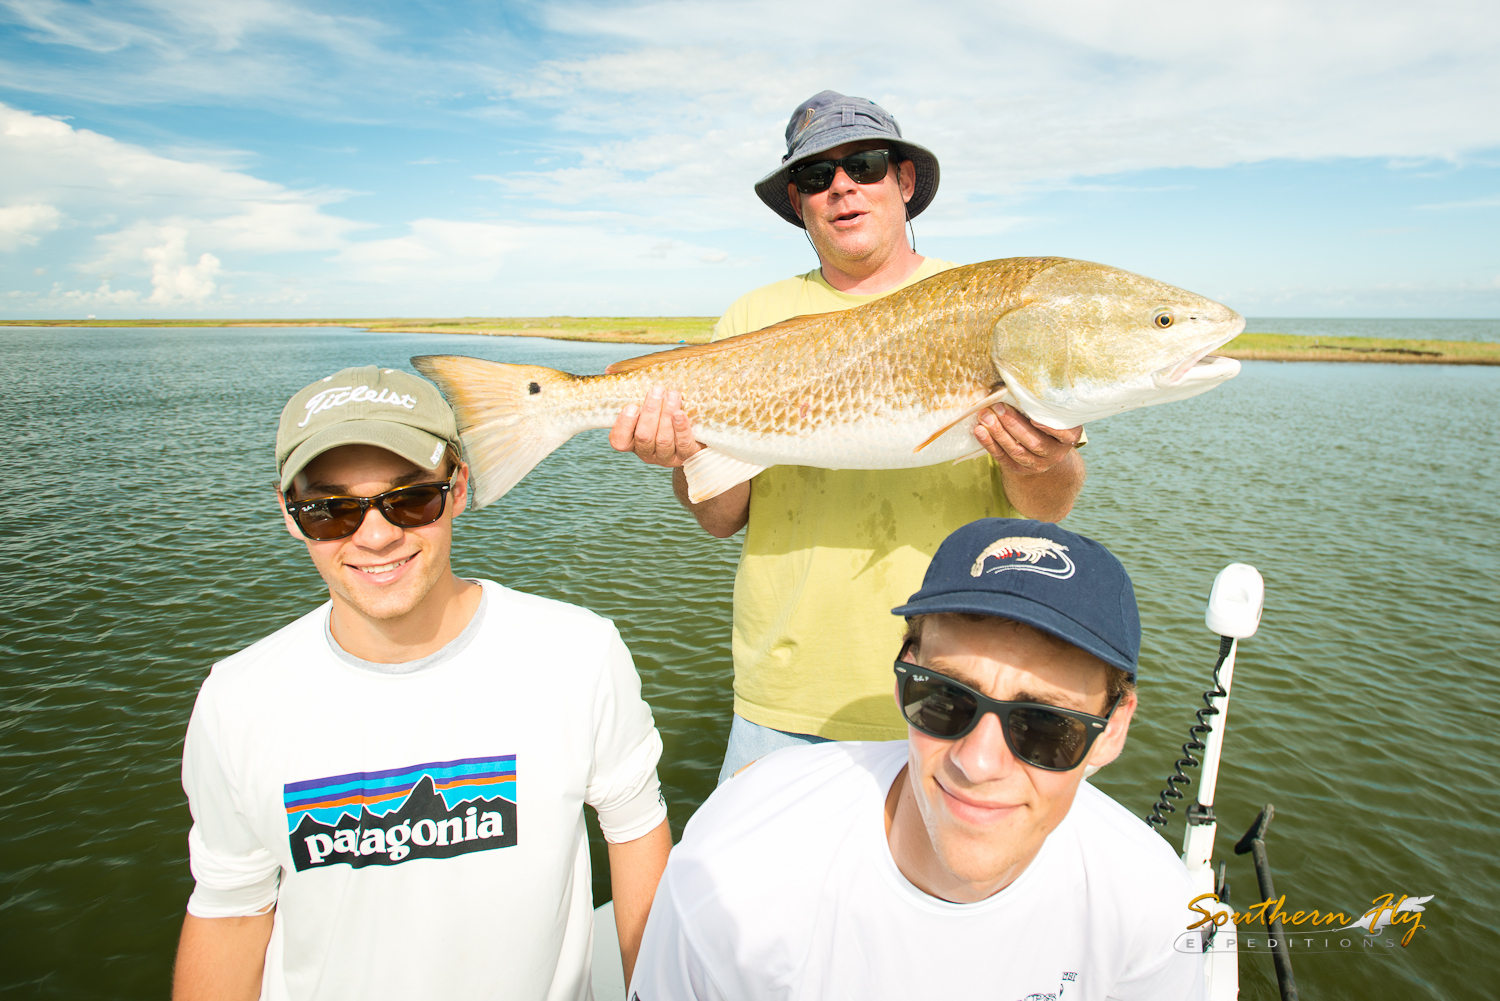 Fly fishing with family new orleans louisiana with southern fly expeditions and captain brandon keck